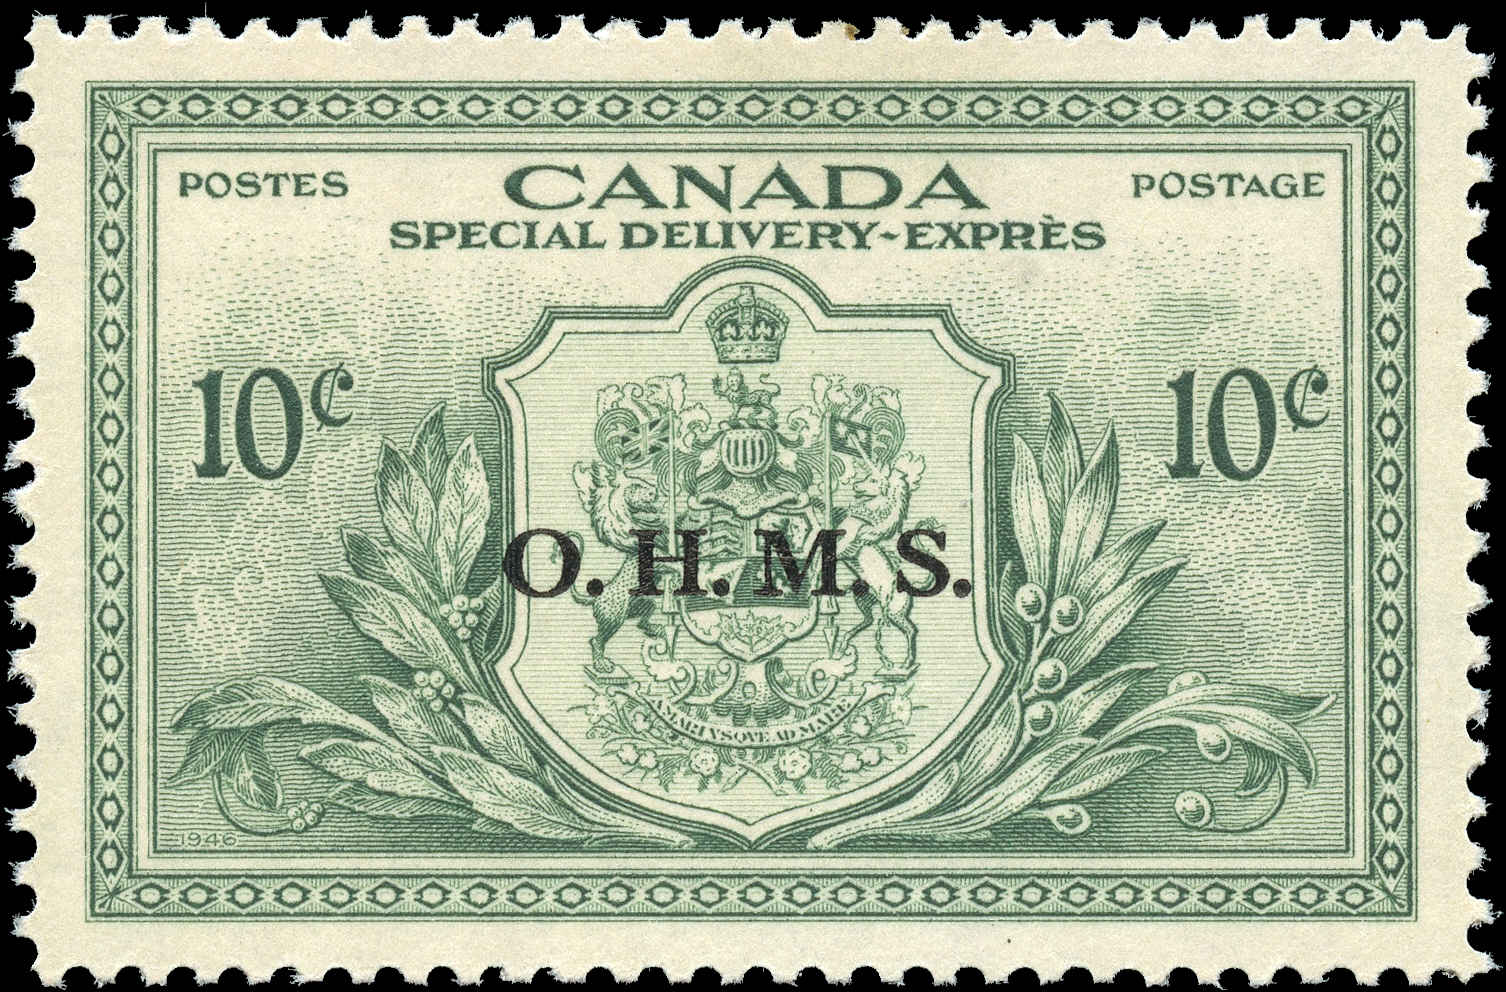 Canada #EO1, Overprint Stamp, VF, MNH